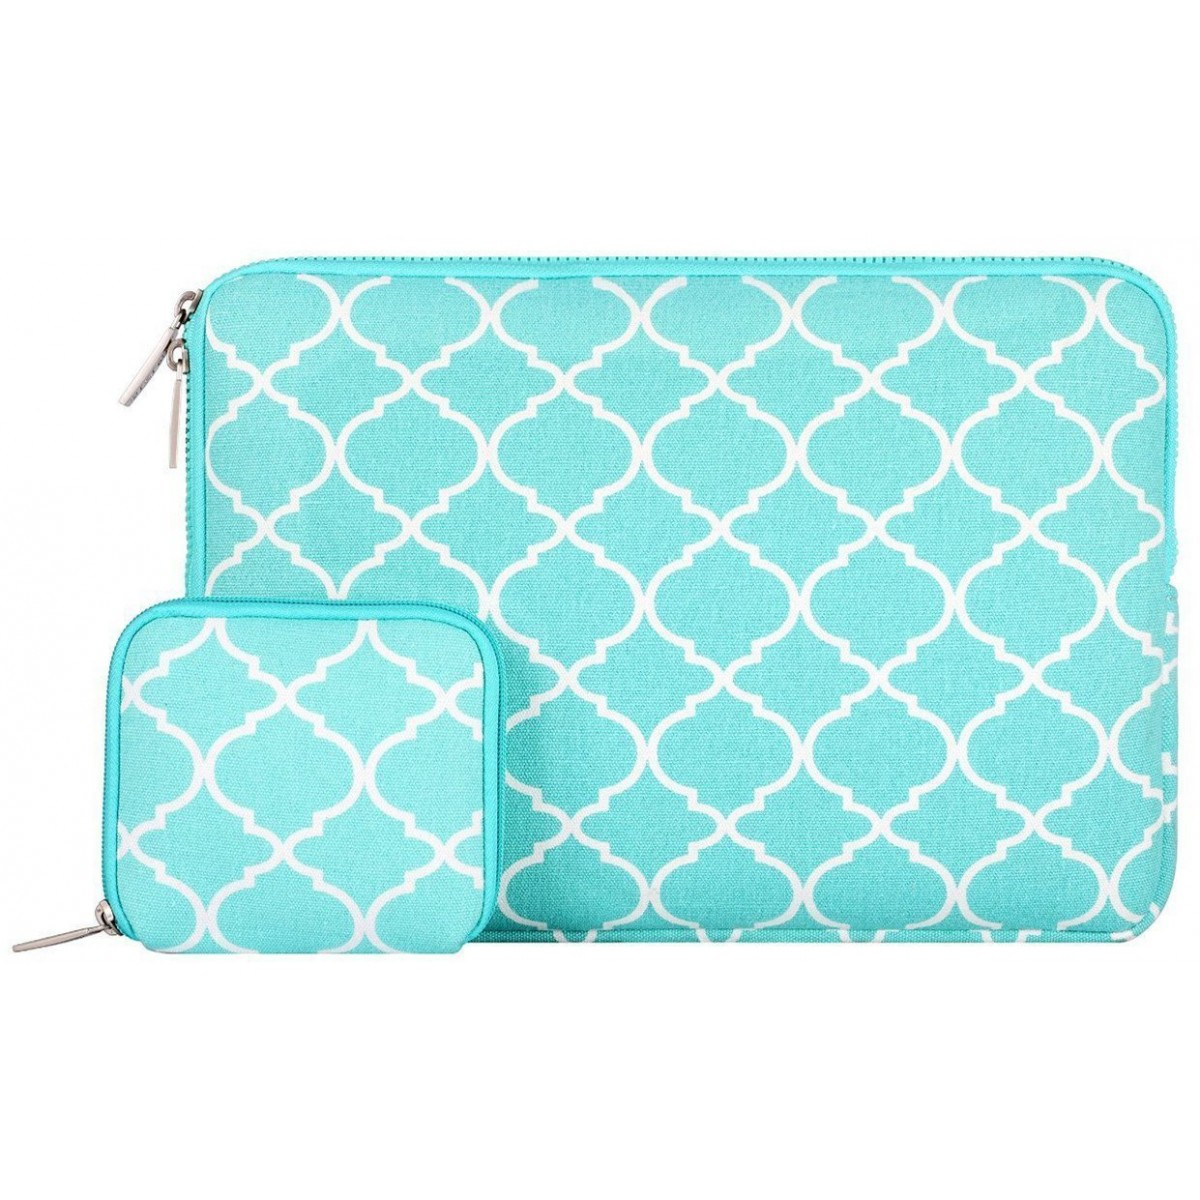 98f59d739a2c Mosiso Laptop Sleeve, Quatrefoil Style Canvas Fabric Case Bag Cover for  13-13.3 Inch MacBook Pro, MacBook Air, Notebook with a Small Case, Hot Blue